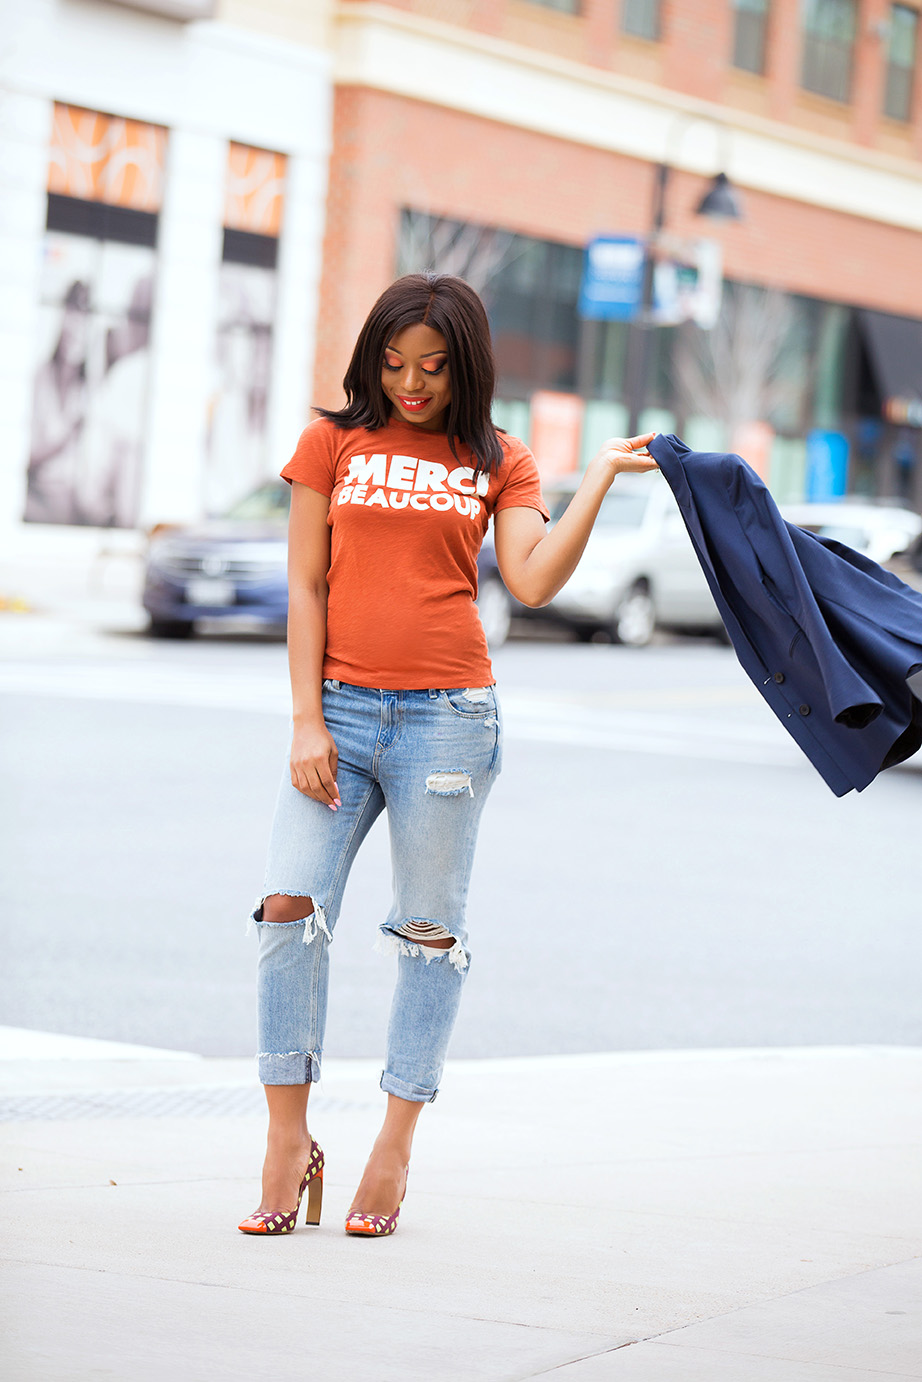 jcrew graphic tee and girlfriend jeans, www.jadore-fashion.com